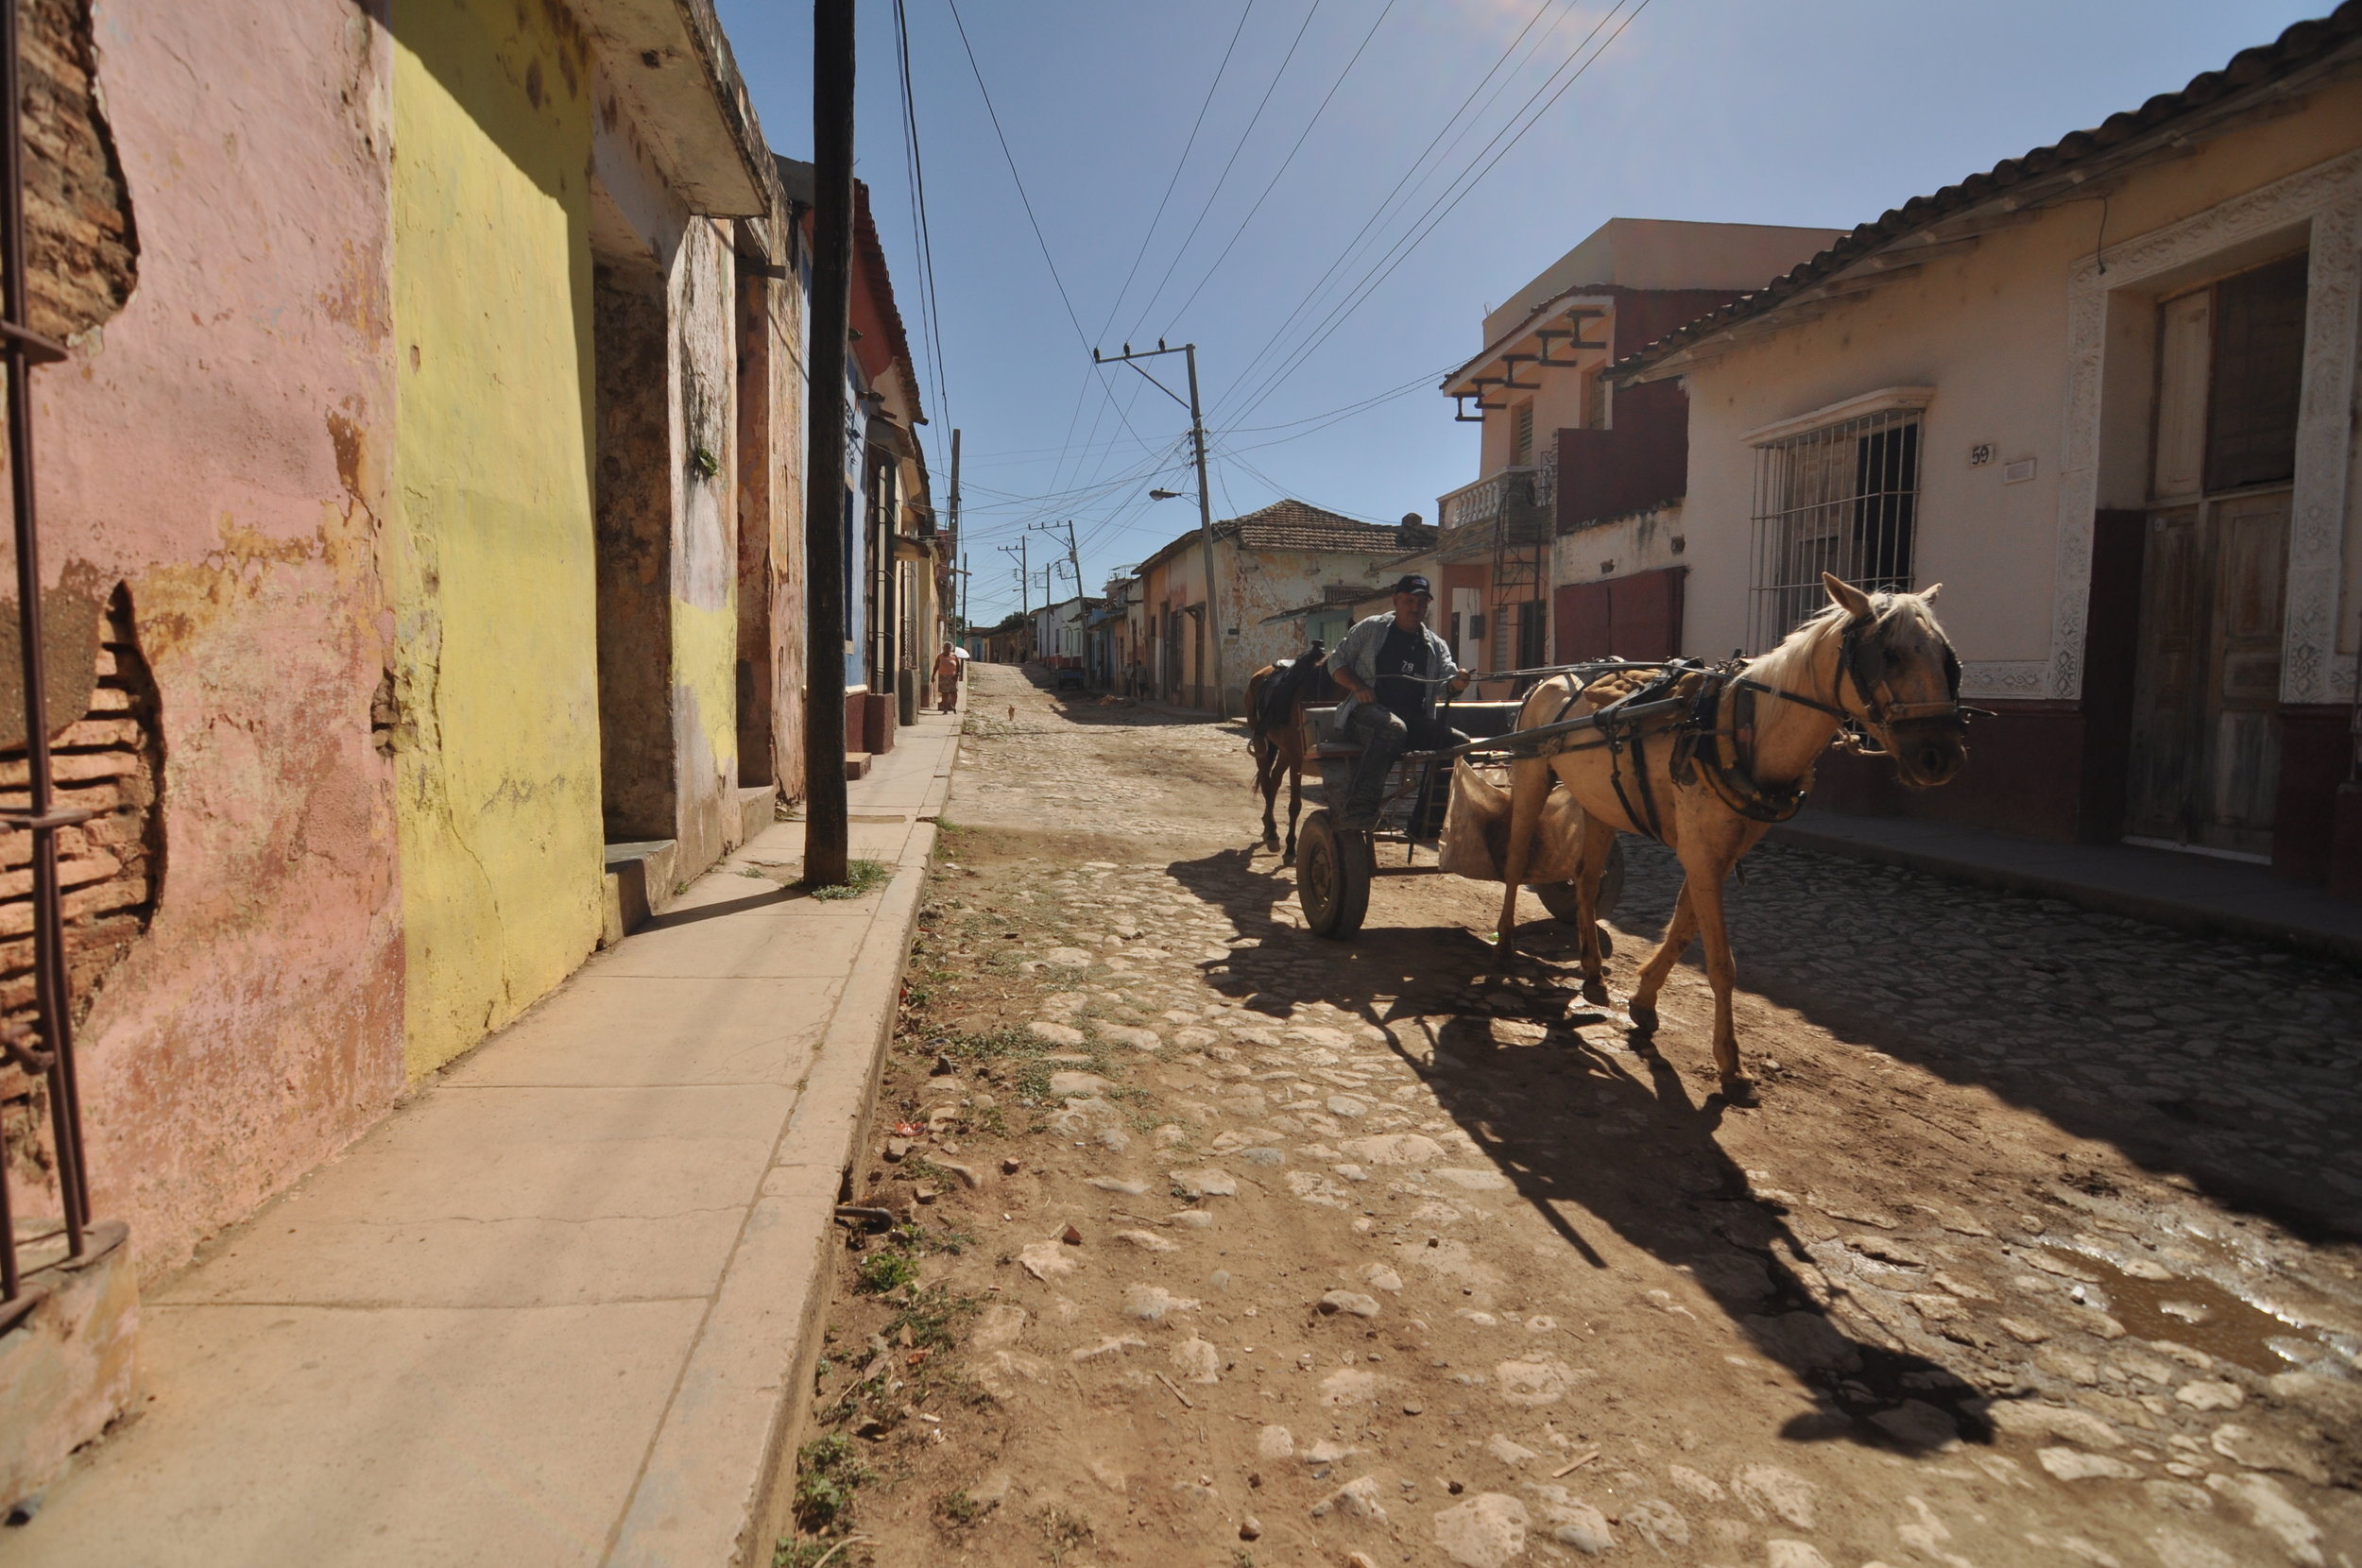 The streets of Trinidad, Cuba.